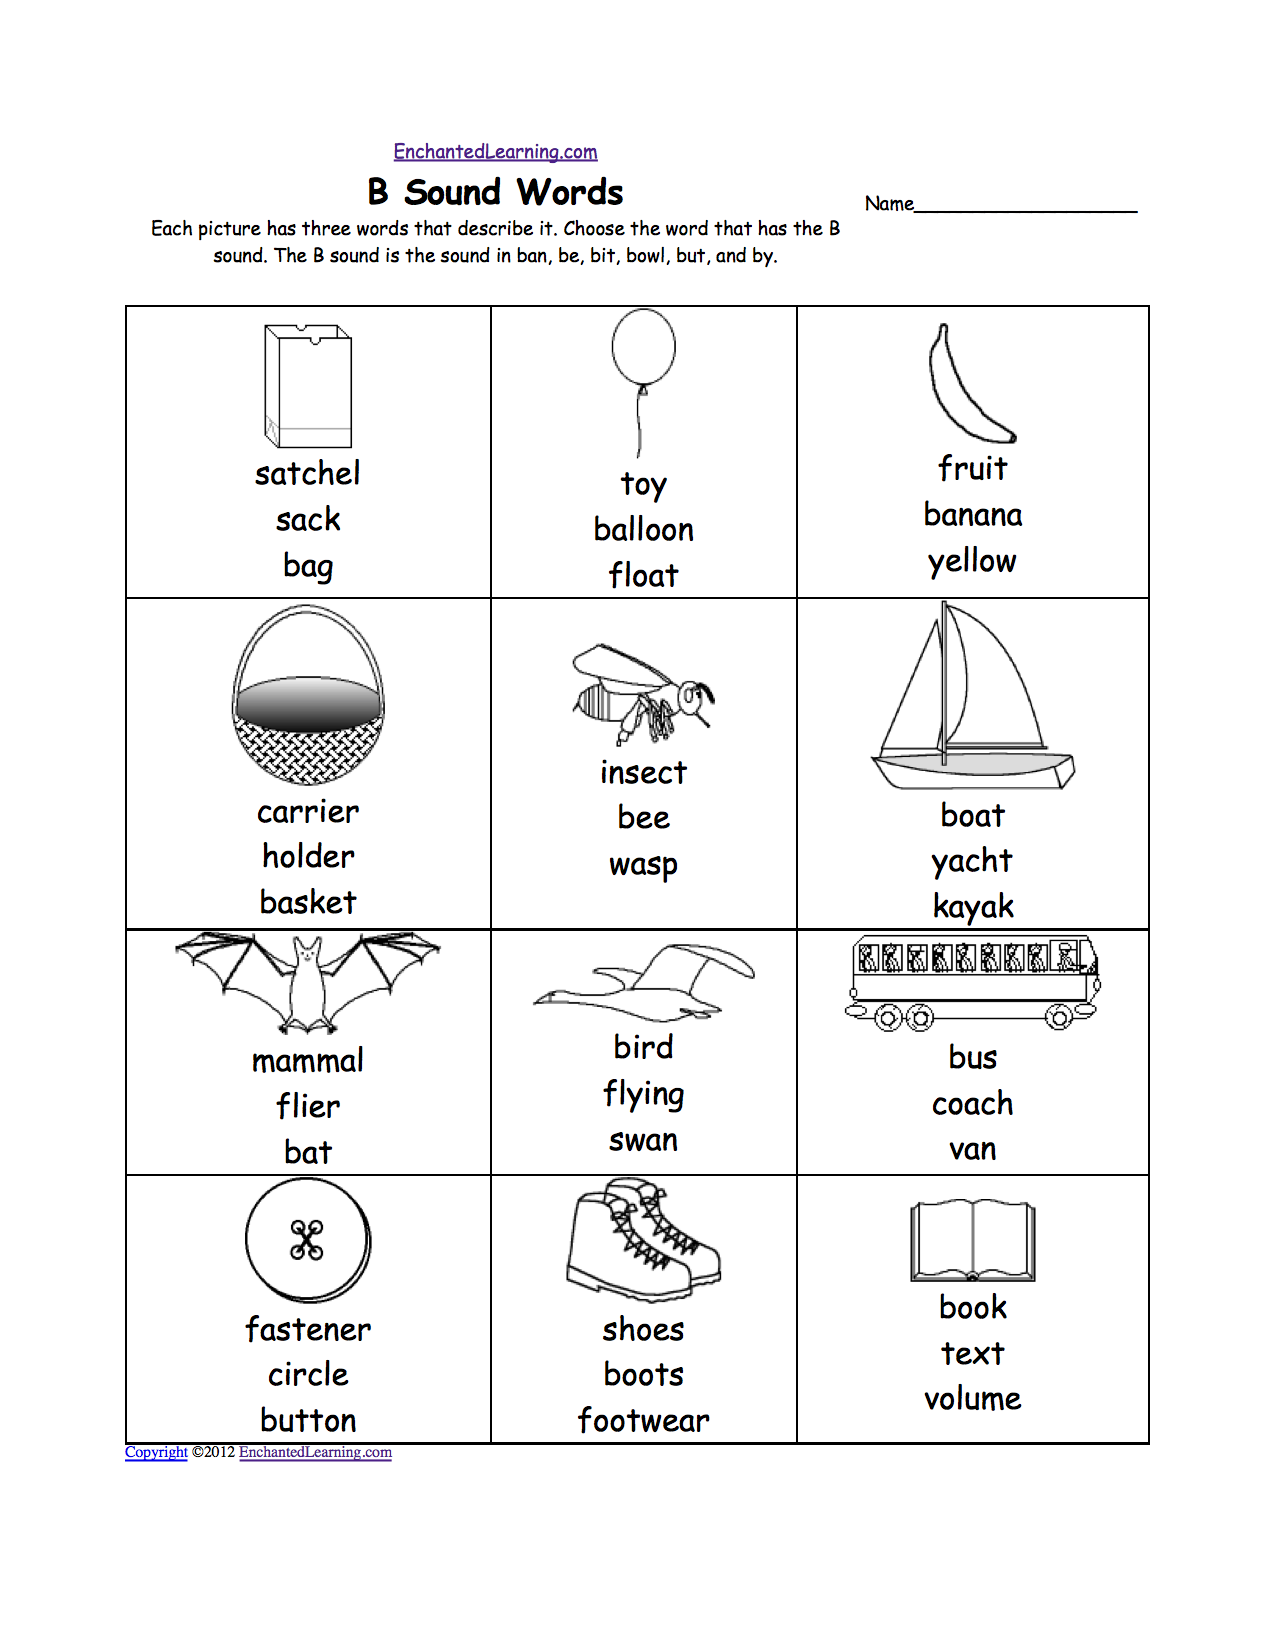 Aldiablosus  Prepossessing Phonics Worksheets Multiple Choice Worksheets To Print  With Fascinating Quotbquot Sound Phonics Worksheet Multiple Choice Each Picture Has Three Words That Describe It Choose The Word That Has A Quotbquot Sound The Quotbquot Sound Is The Sound  With Easy On The Eye Mode Median Range Worksheet Also Navidad Worksheets In Addition Exploring Science  Worksheets And Worksheets About Adjectives As Well As Grade  Reading Comprehension Worksheet Additionally Prefixes For Kids Worksheets From Enchantedlearningcom With Aldiablosus  Fascinating Phonics Worksheets Multiple Choice Worksheets To Print  With Easy On The Eye Quotbquot Sound Phonics Worksheet Multiple Choice Each Picture Has Three Words That Describe It Choose The Word That Has A Quotbquot Sound The Quotbquot Sound Is The Sound  And Prepossessing Mode Median Range Worksheet Also Navidad Worksheets In Addition Exploring Science  Worksheets From Enchantedlearningcom